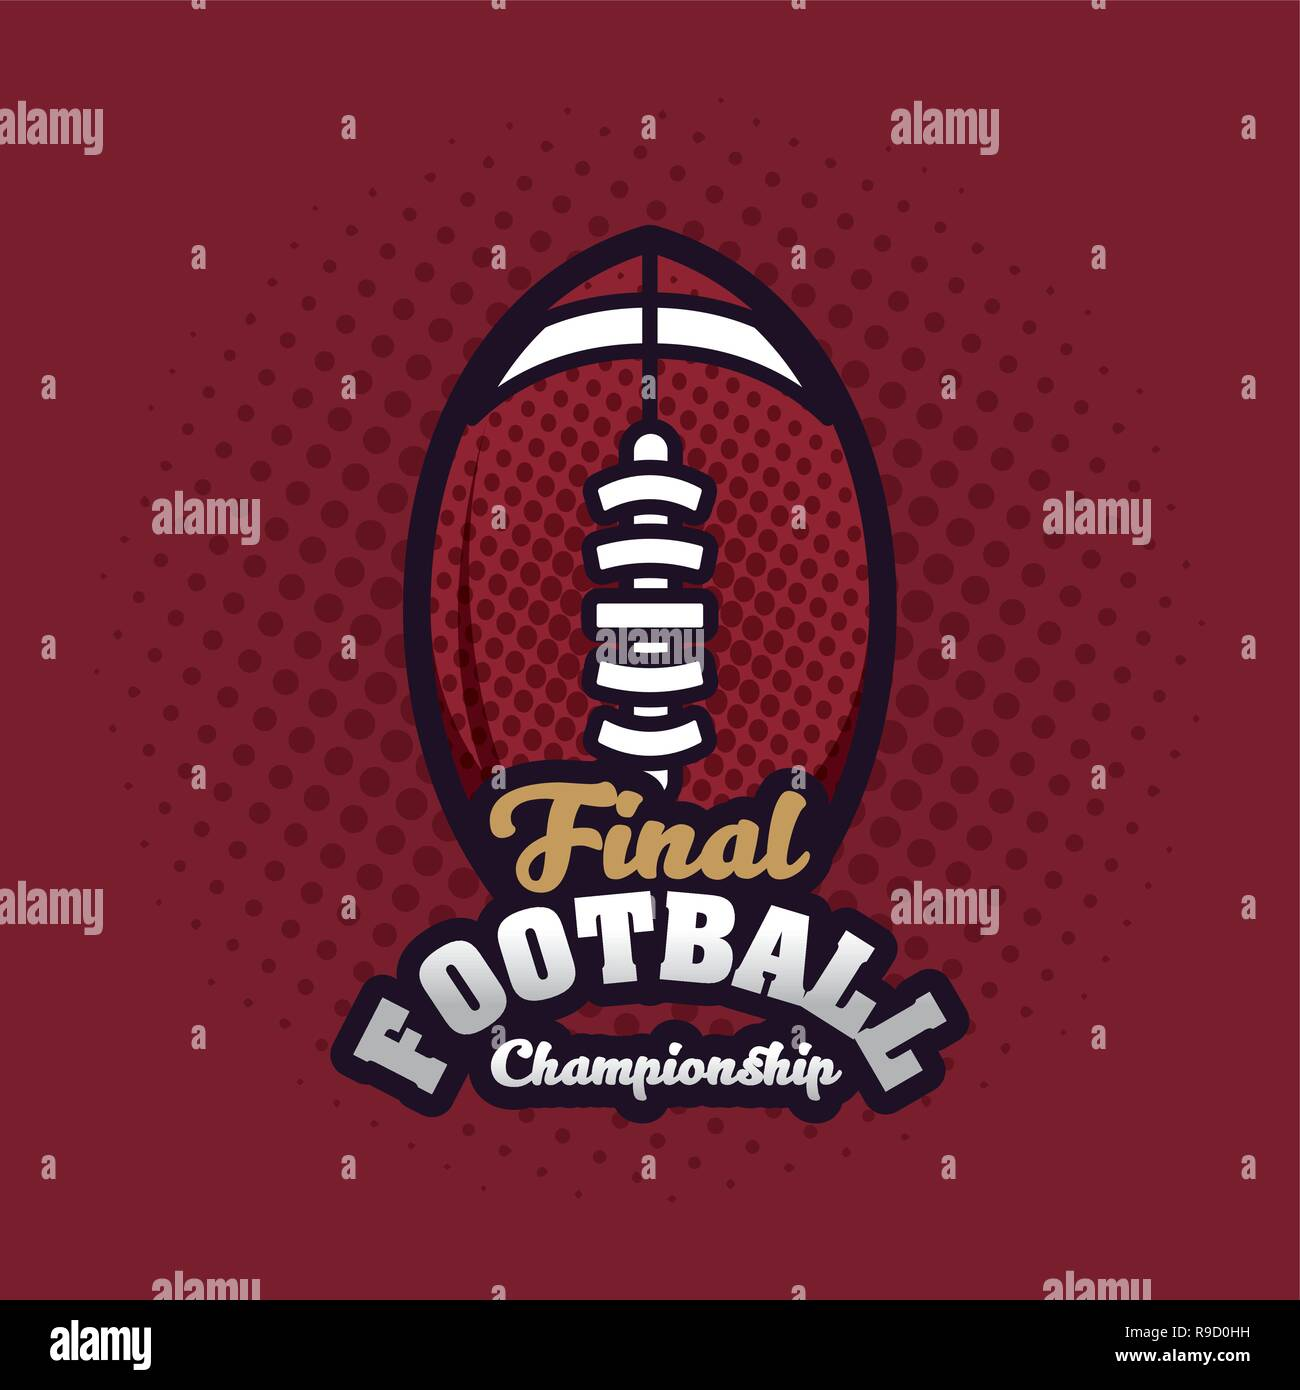 Football championship final - Stock Vector